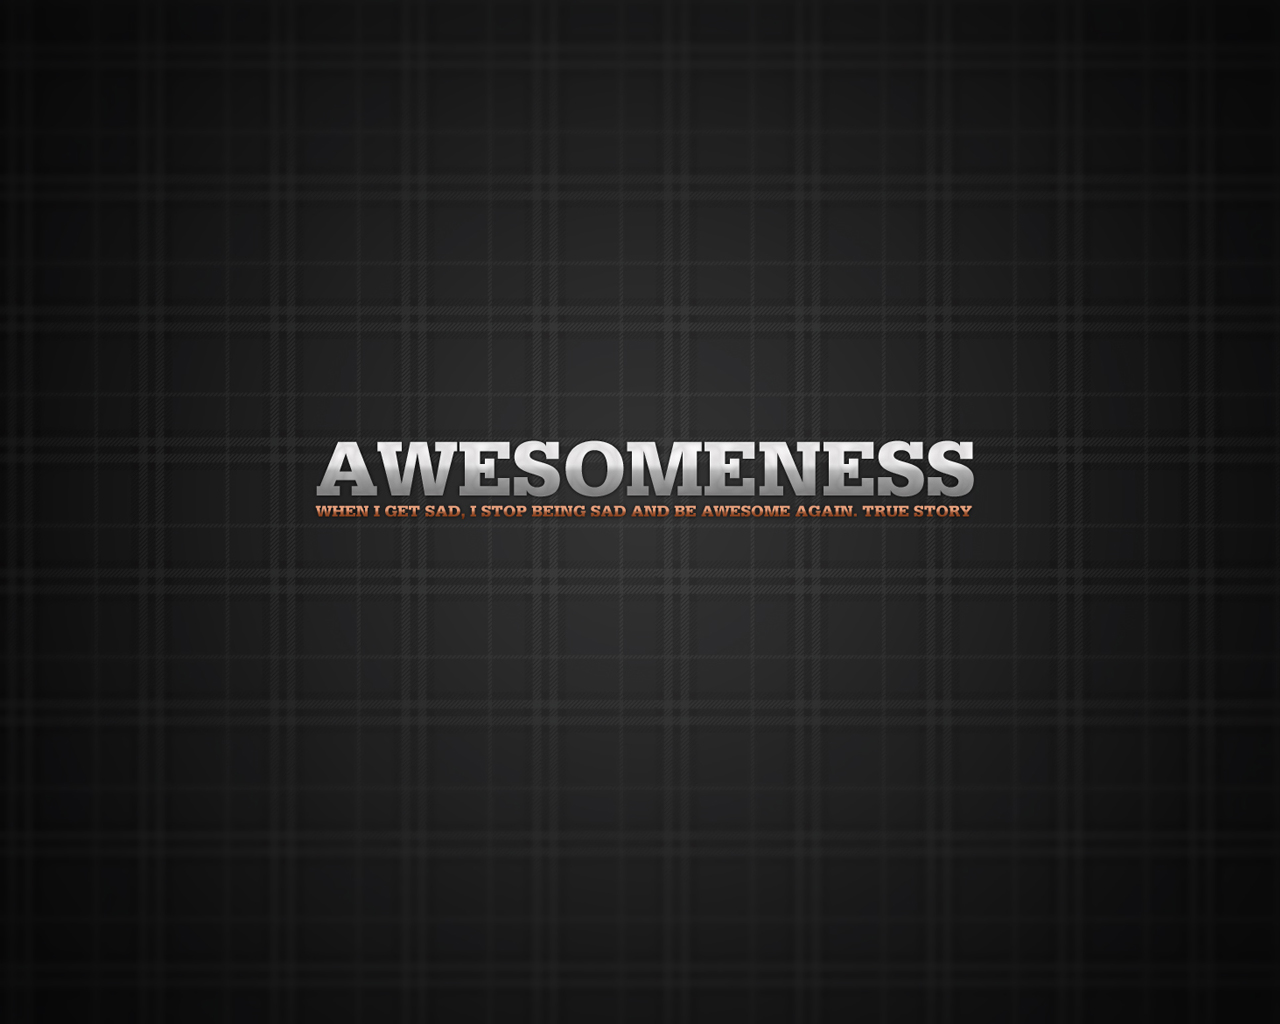 Motivational with Awesomeness HD Wallpaper 3D Abstract Wallpapers 1280x1024